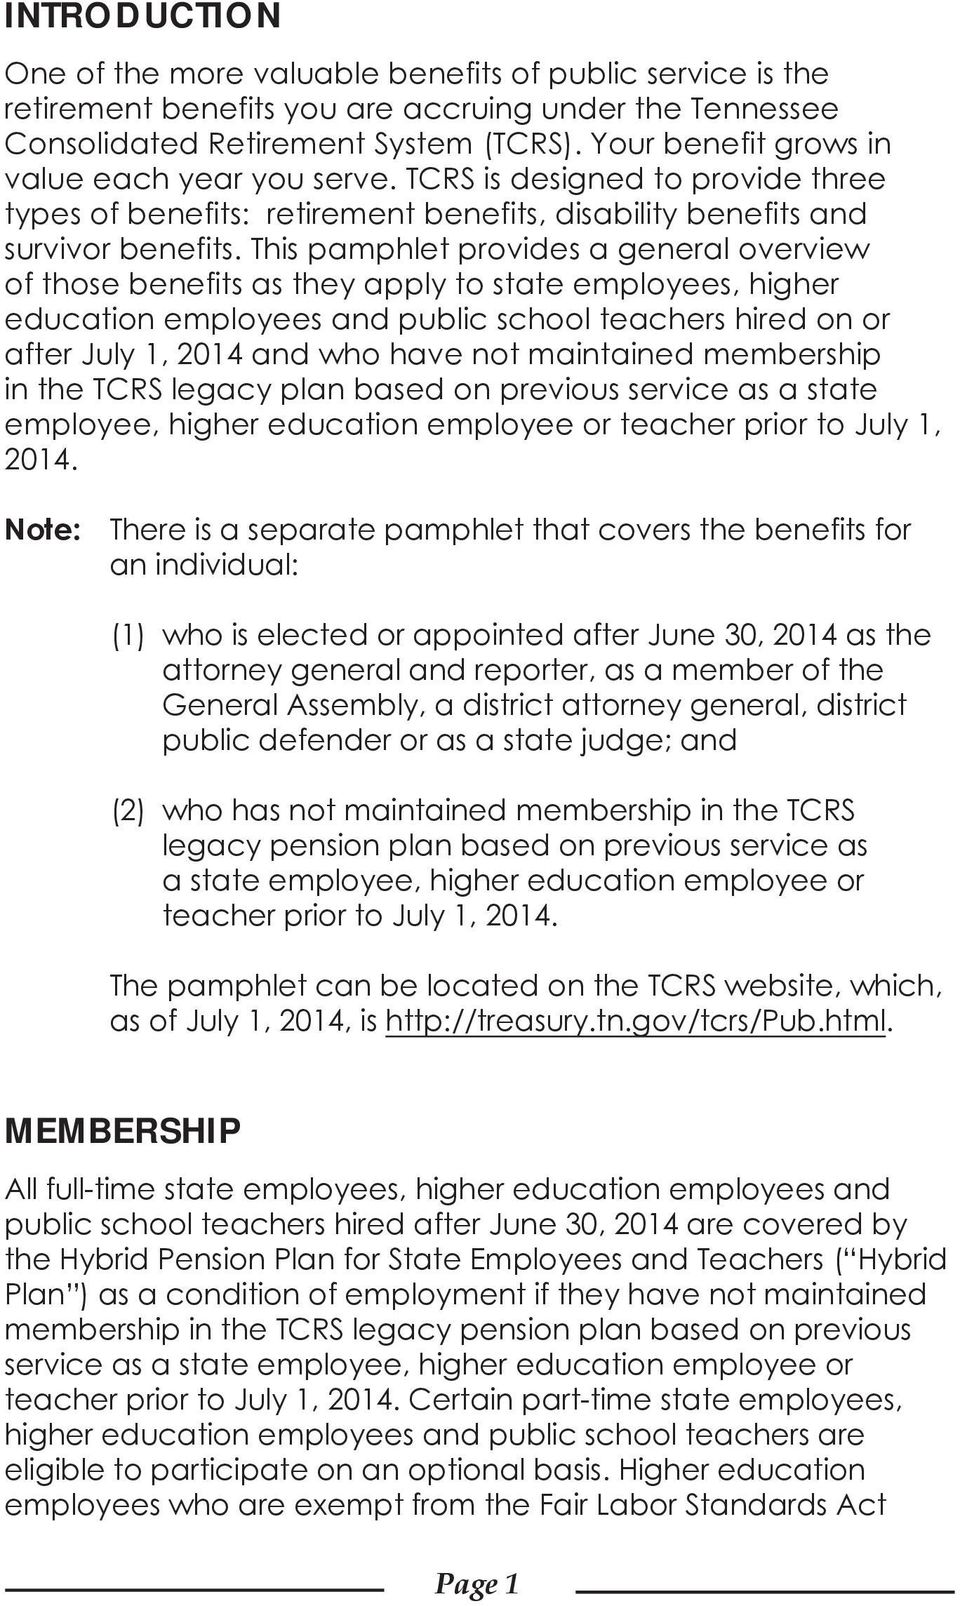 This pamphlet provides a general overview of those benefits as they apply to state employees, higher education employees and public school teachers hired on or after July 1, 2014 and who have not